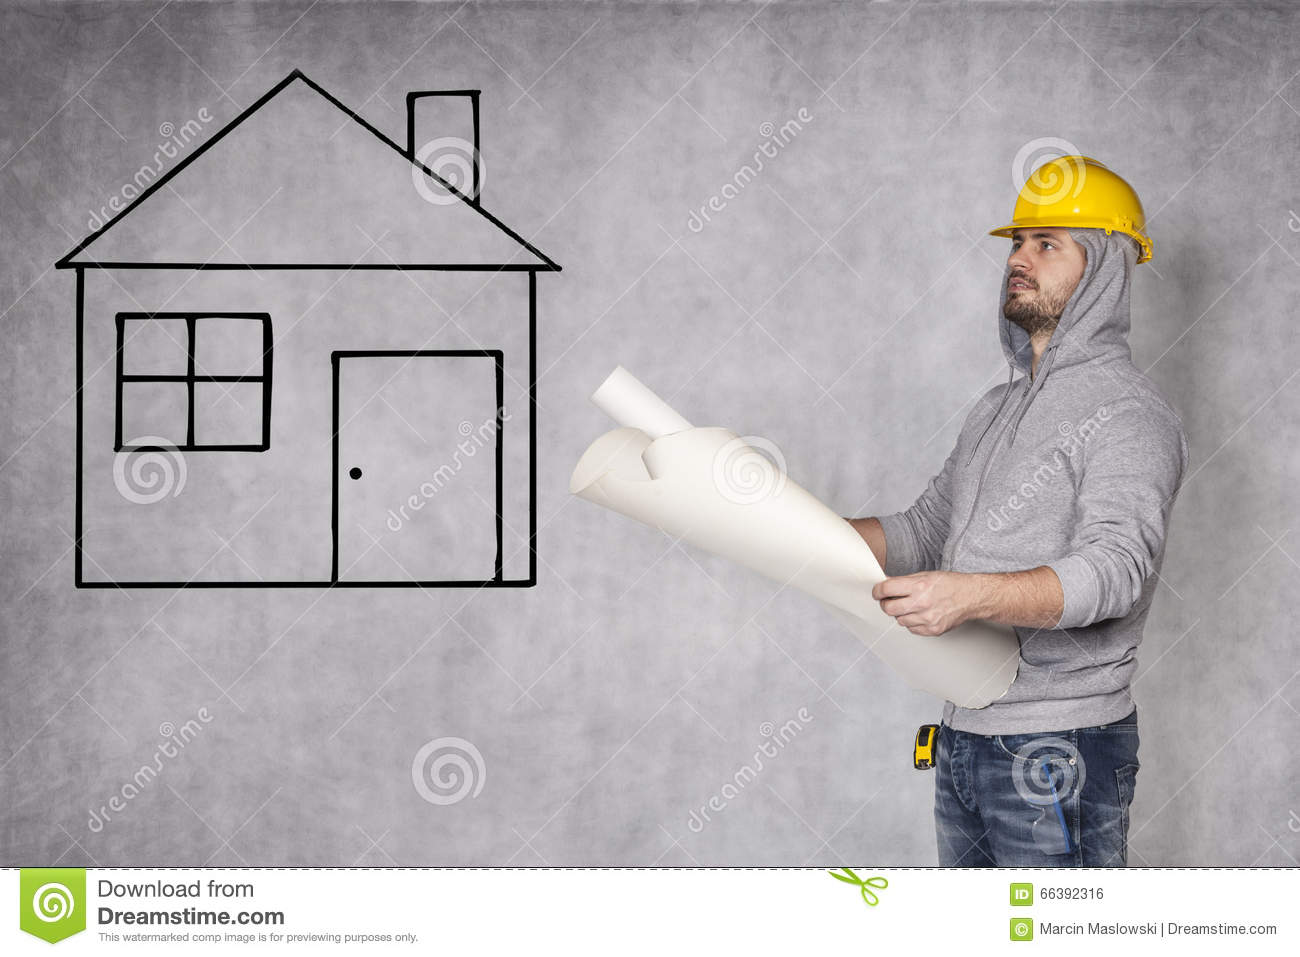 Designers Looking At House Plans Stock Photo   Image  Designers looking at house plans